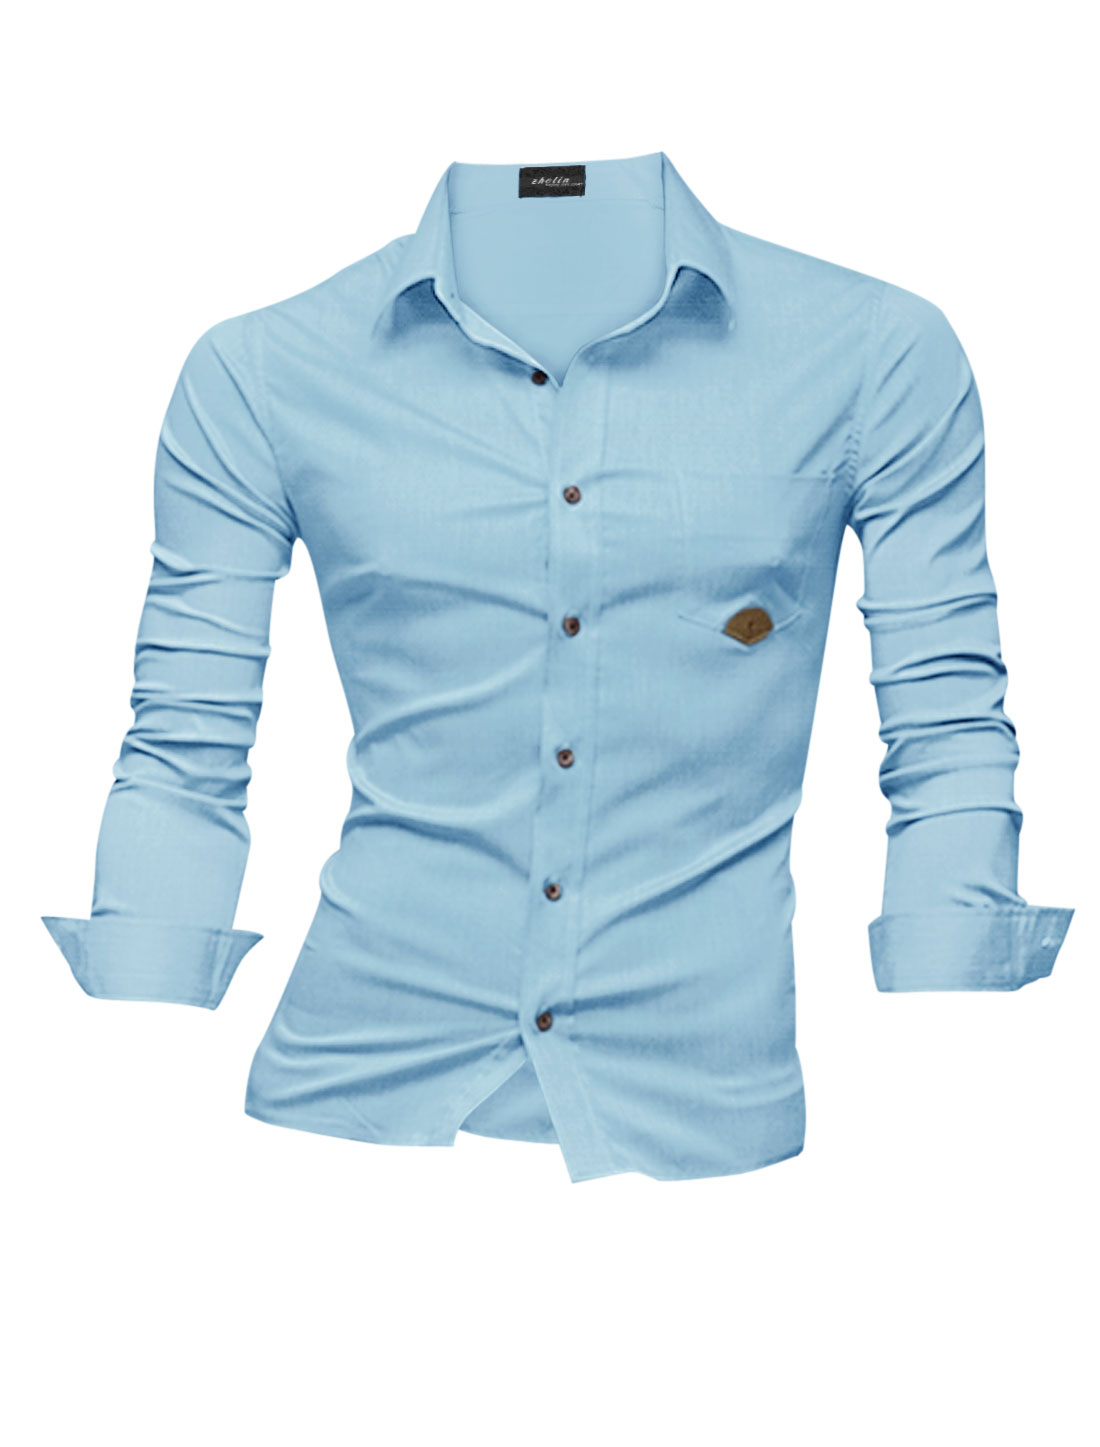 Men Point Collar Single Breasted One Chest Pocket Button Down Shirt Light Blue M